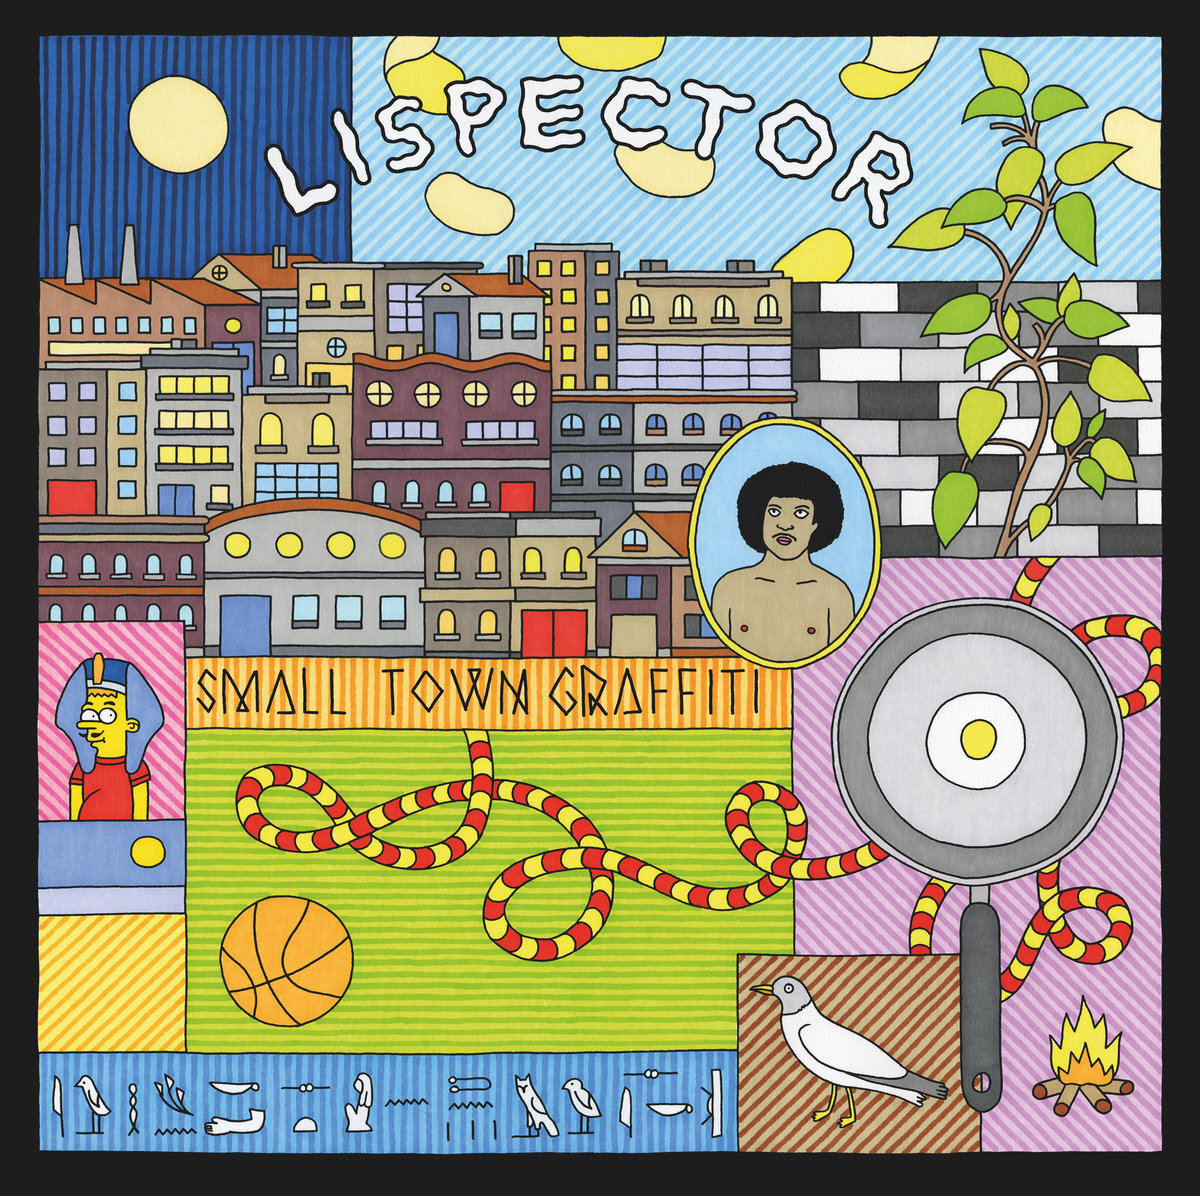 Lispector / Small Town Graffiti - Cover by Havec